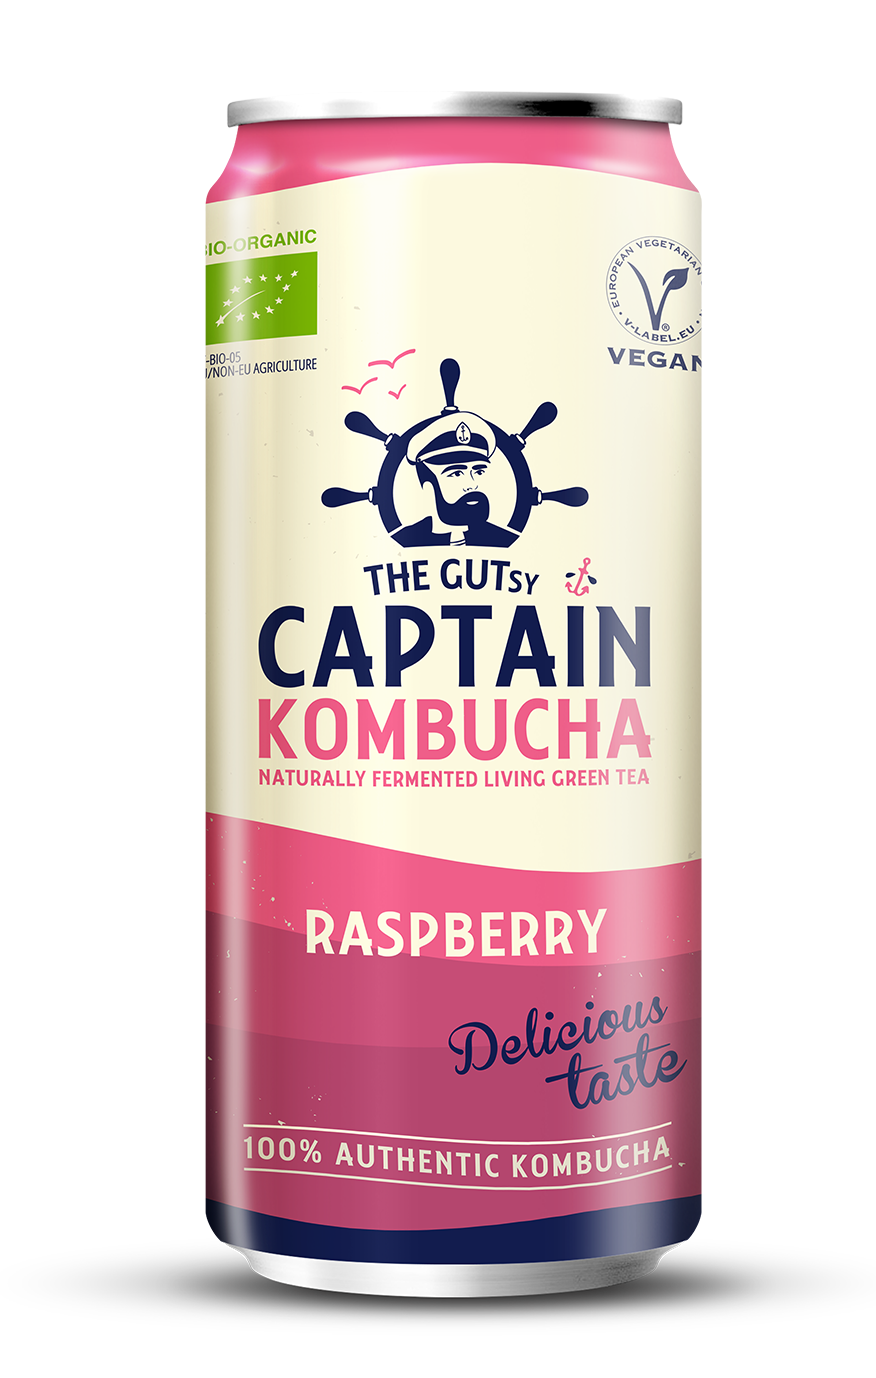 The Gutsy Captain Kombucha Raspberry BIO